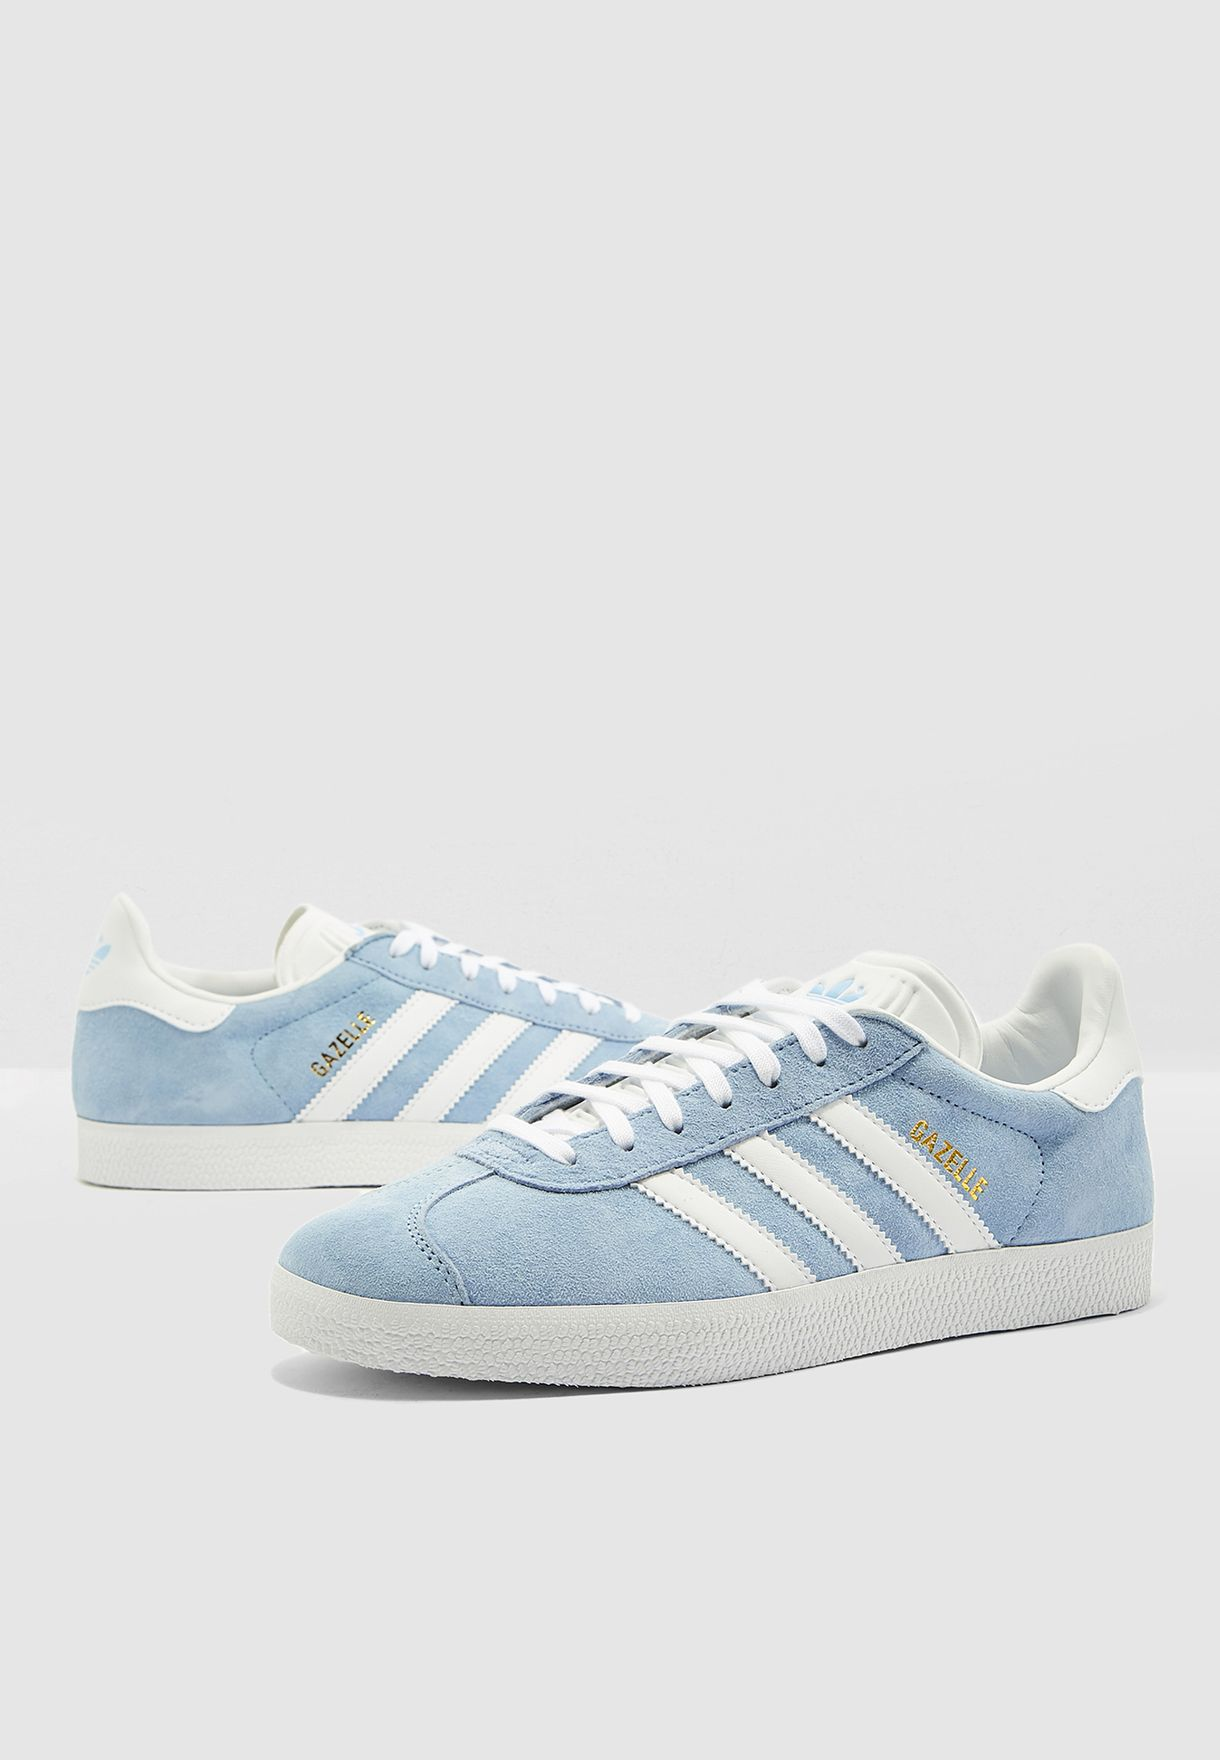 966c5584342 Shop adidas Originals blue Gazelle EE5535 for Women in UAE ...